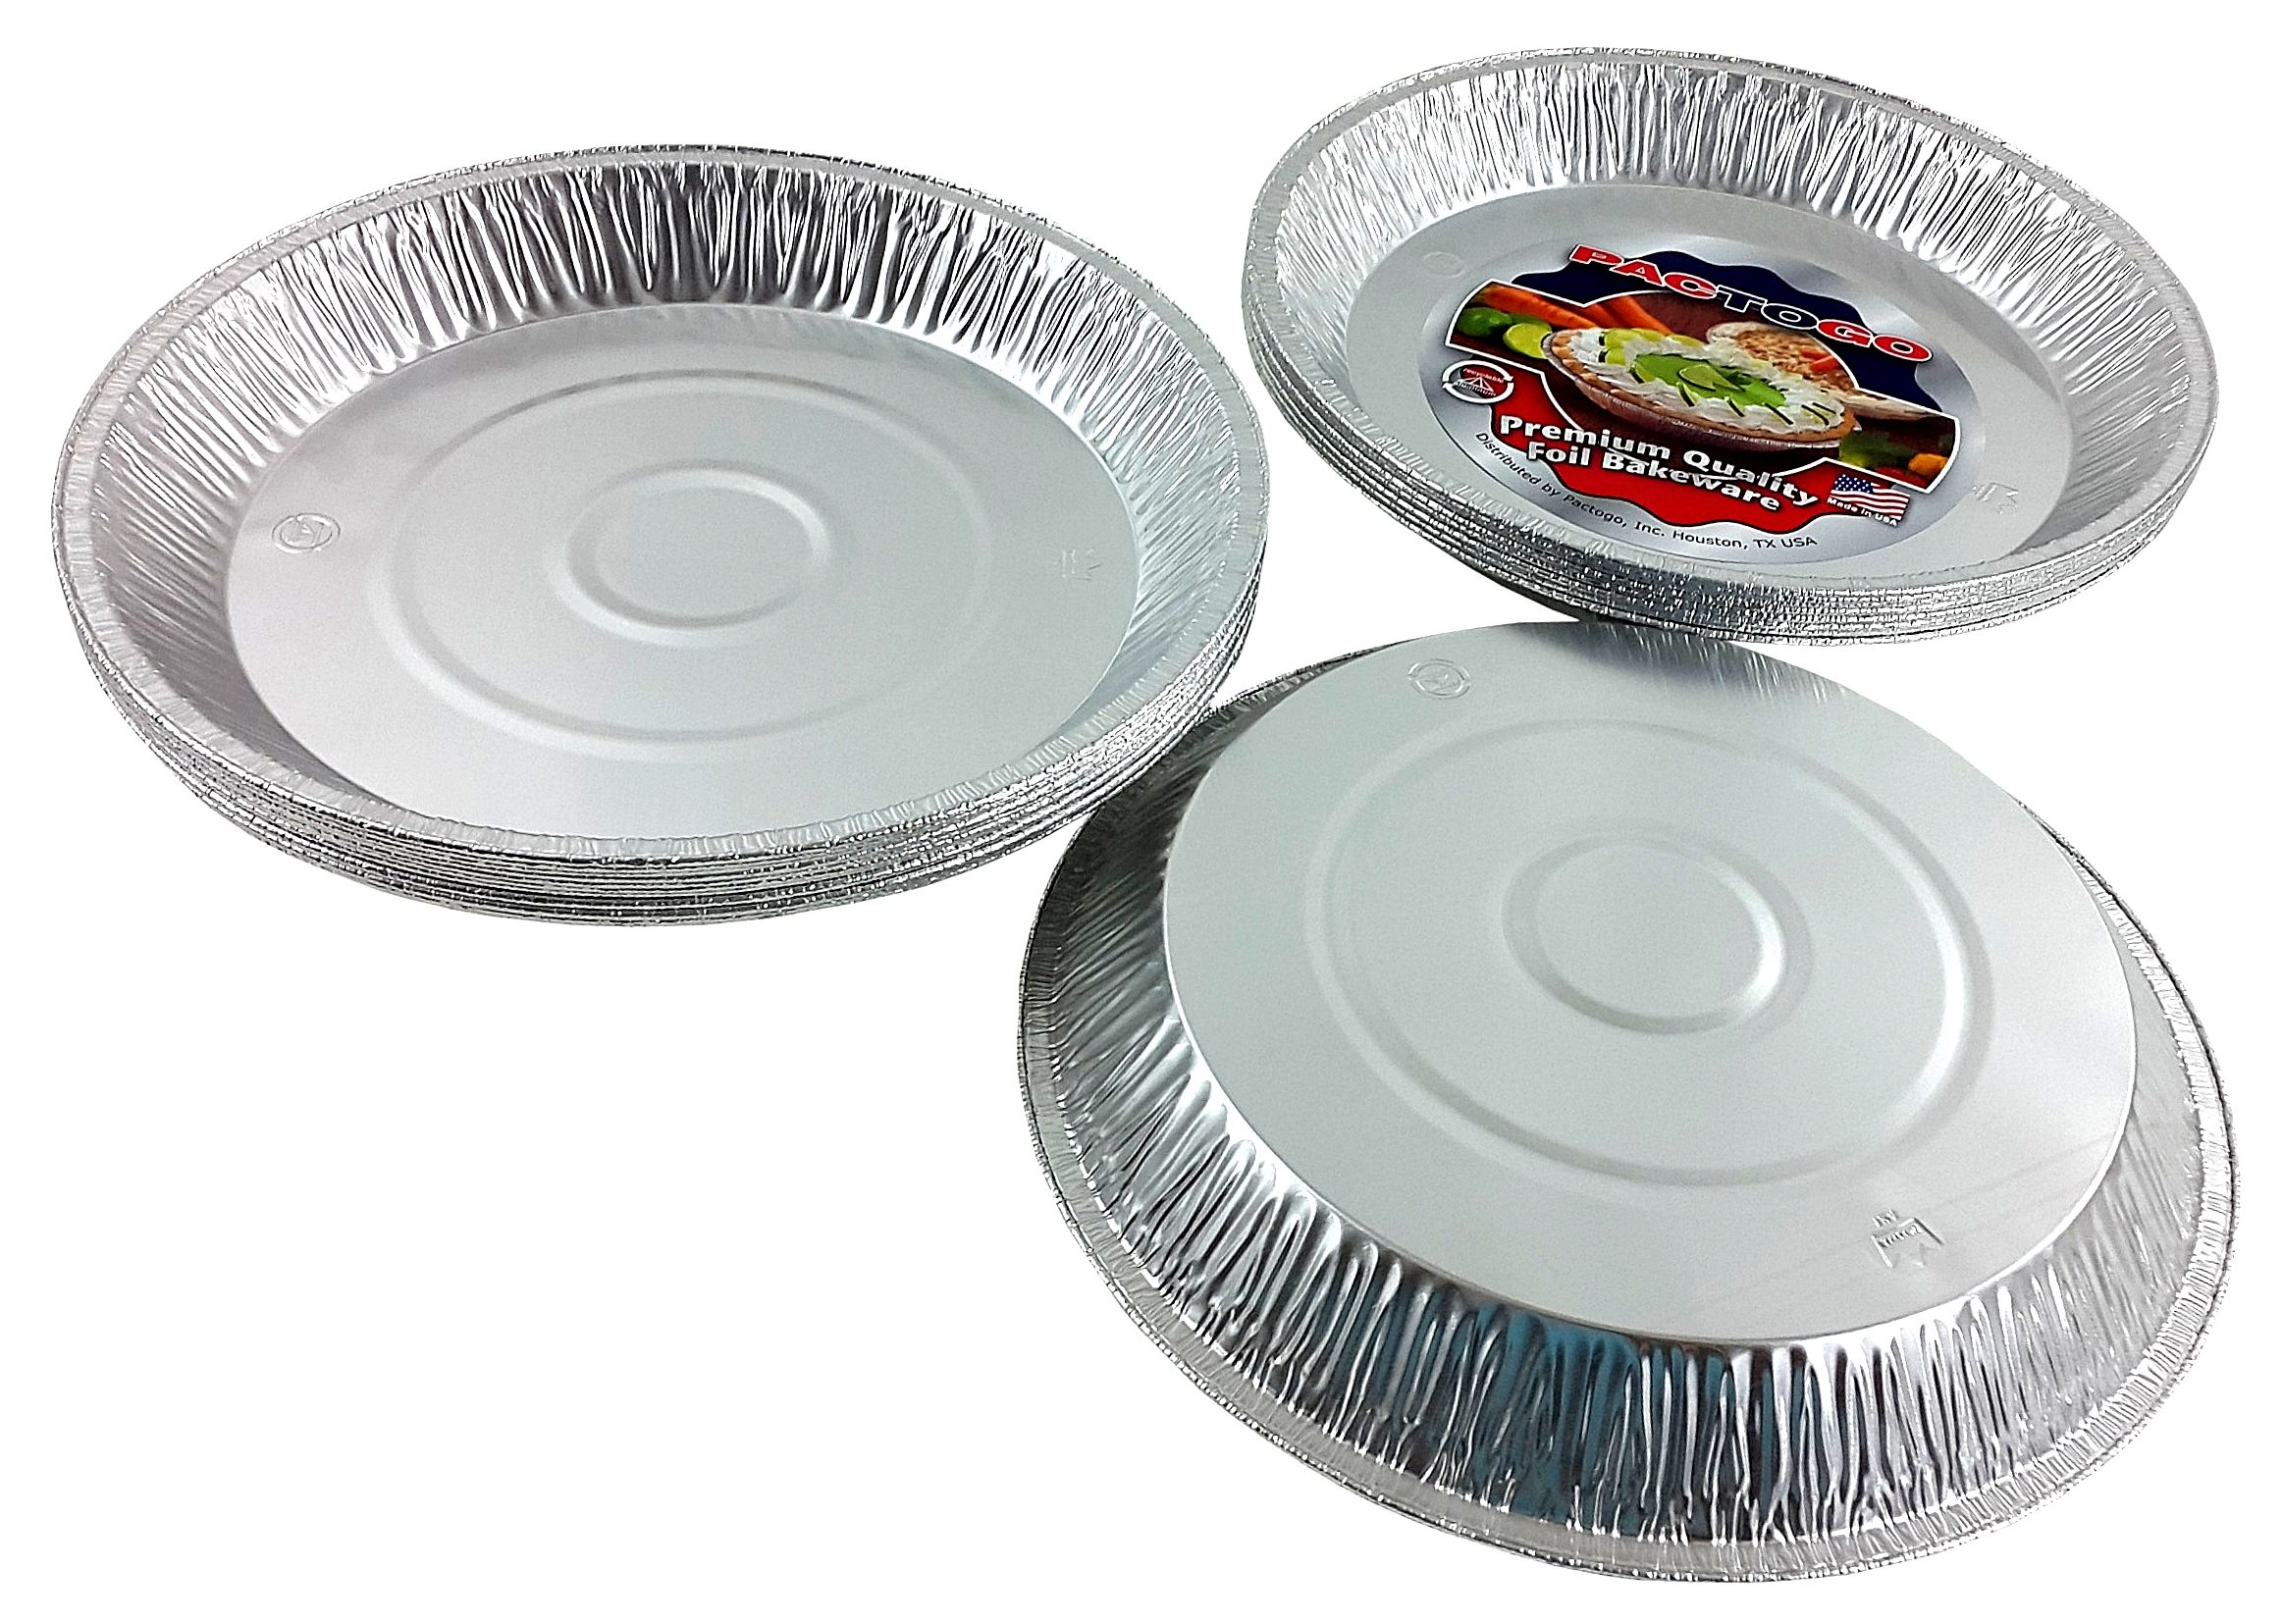 Pactogo 12'' Aluminum Foil Pie Pan Extra-Deep Disposable Tin Plates (Pack of 25) by PACTOGO (Image #5)